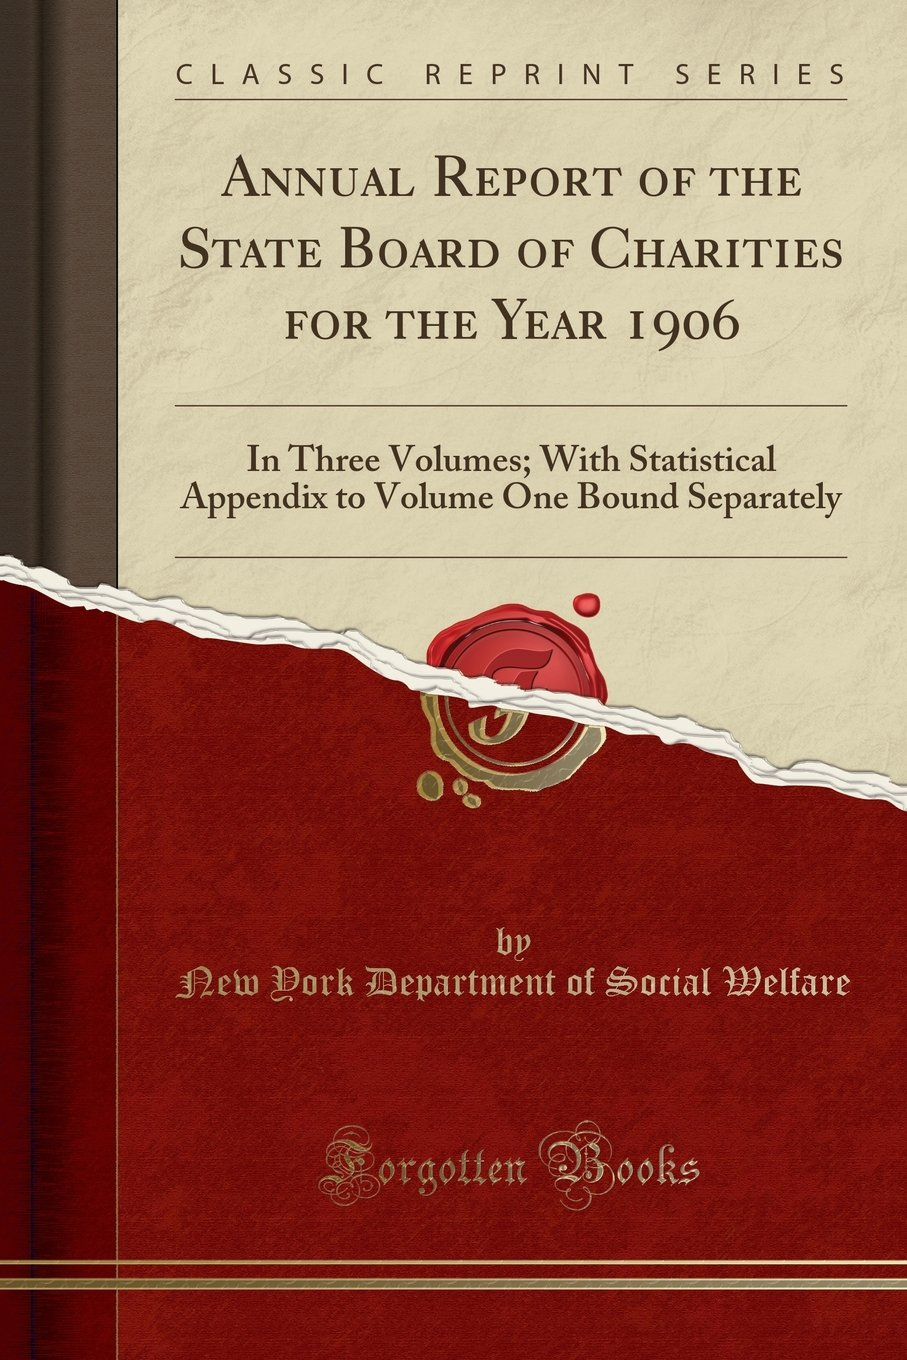 Download Annual Report of the State Board of Charities for the Year 1906: In Three Volumes; With Statistical Appendix to Volume One Bound Separately (Classic Reprint) ebook